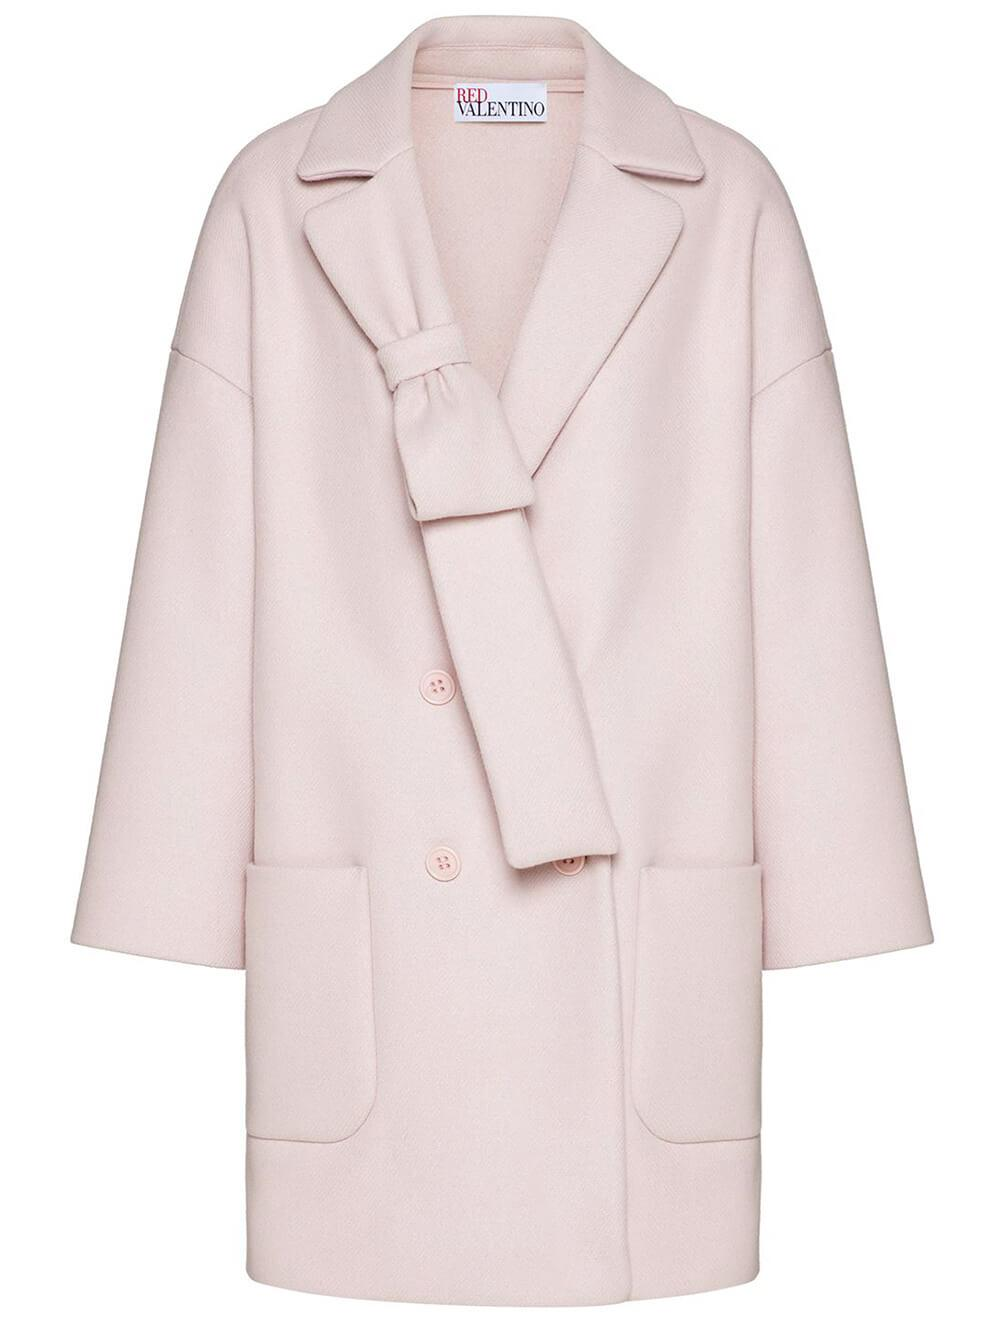 Cashmere Coat With Bow Detail Item # WR3CAD605Y6